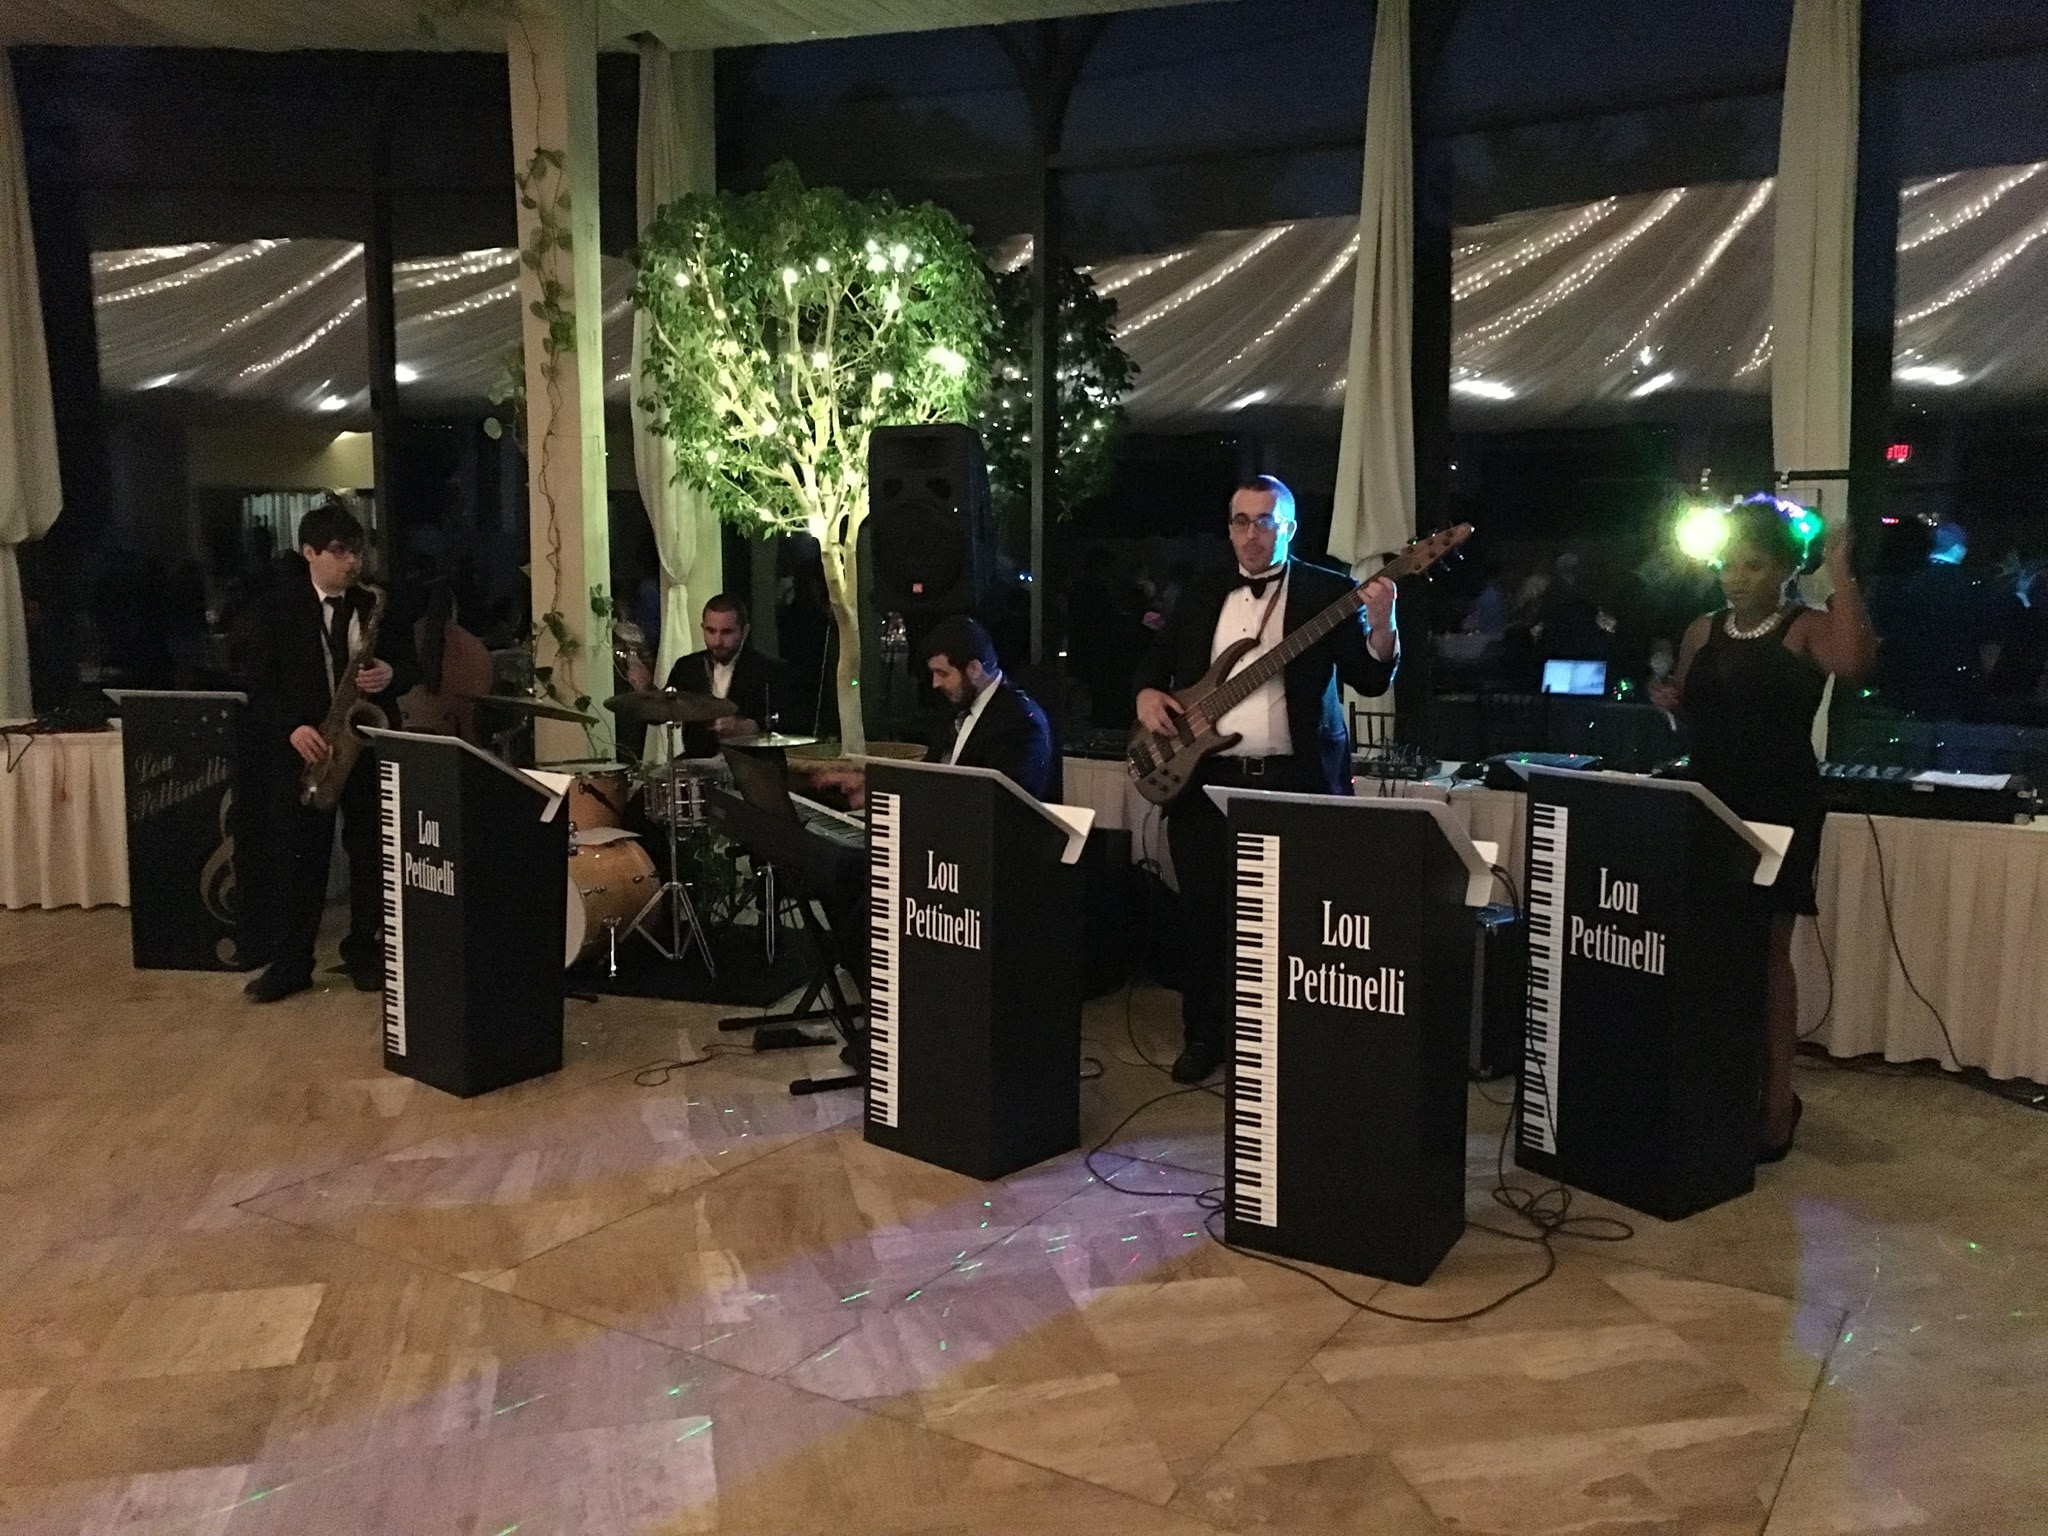 Louis Pettinelli Band Playing at Wedding Event